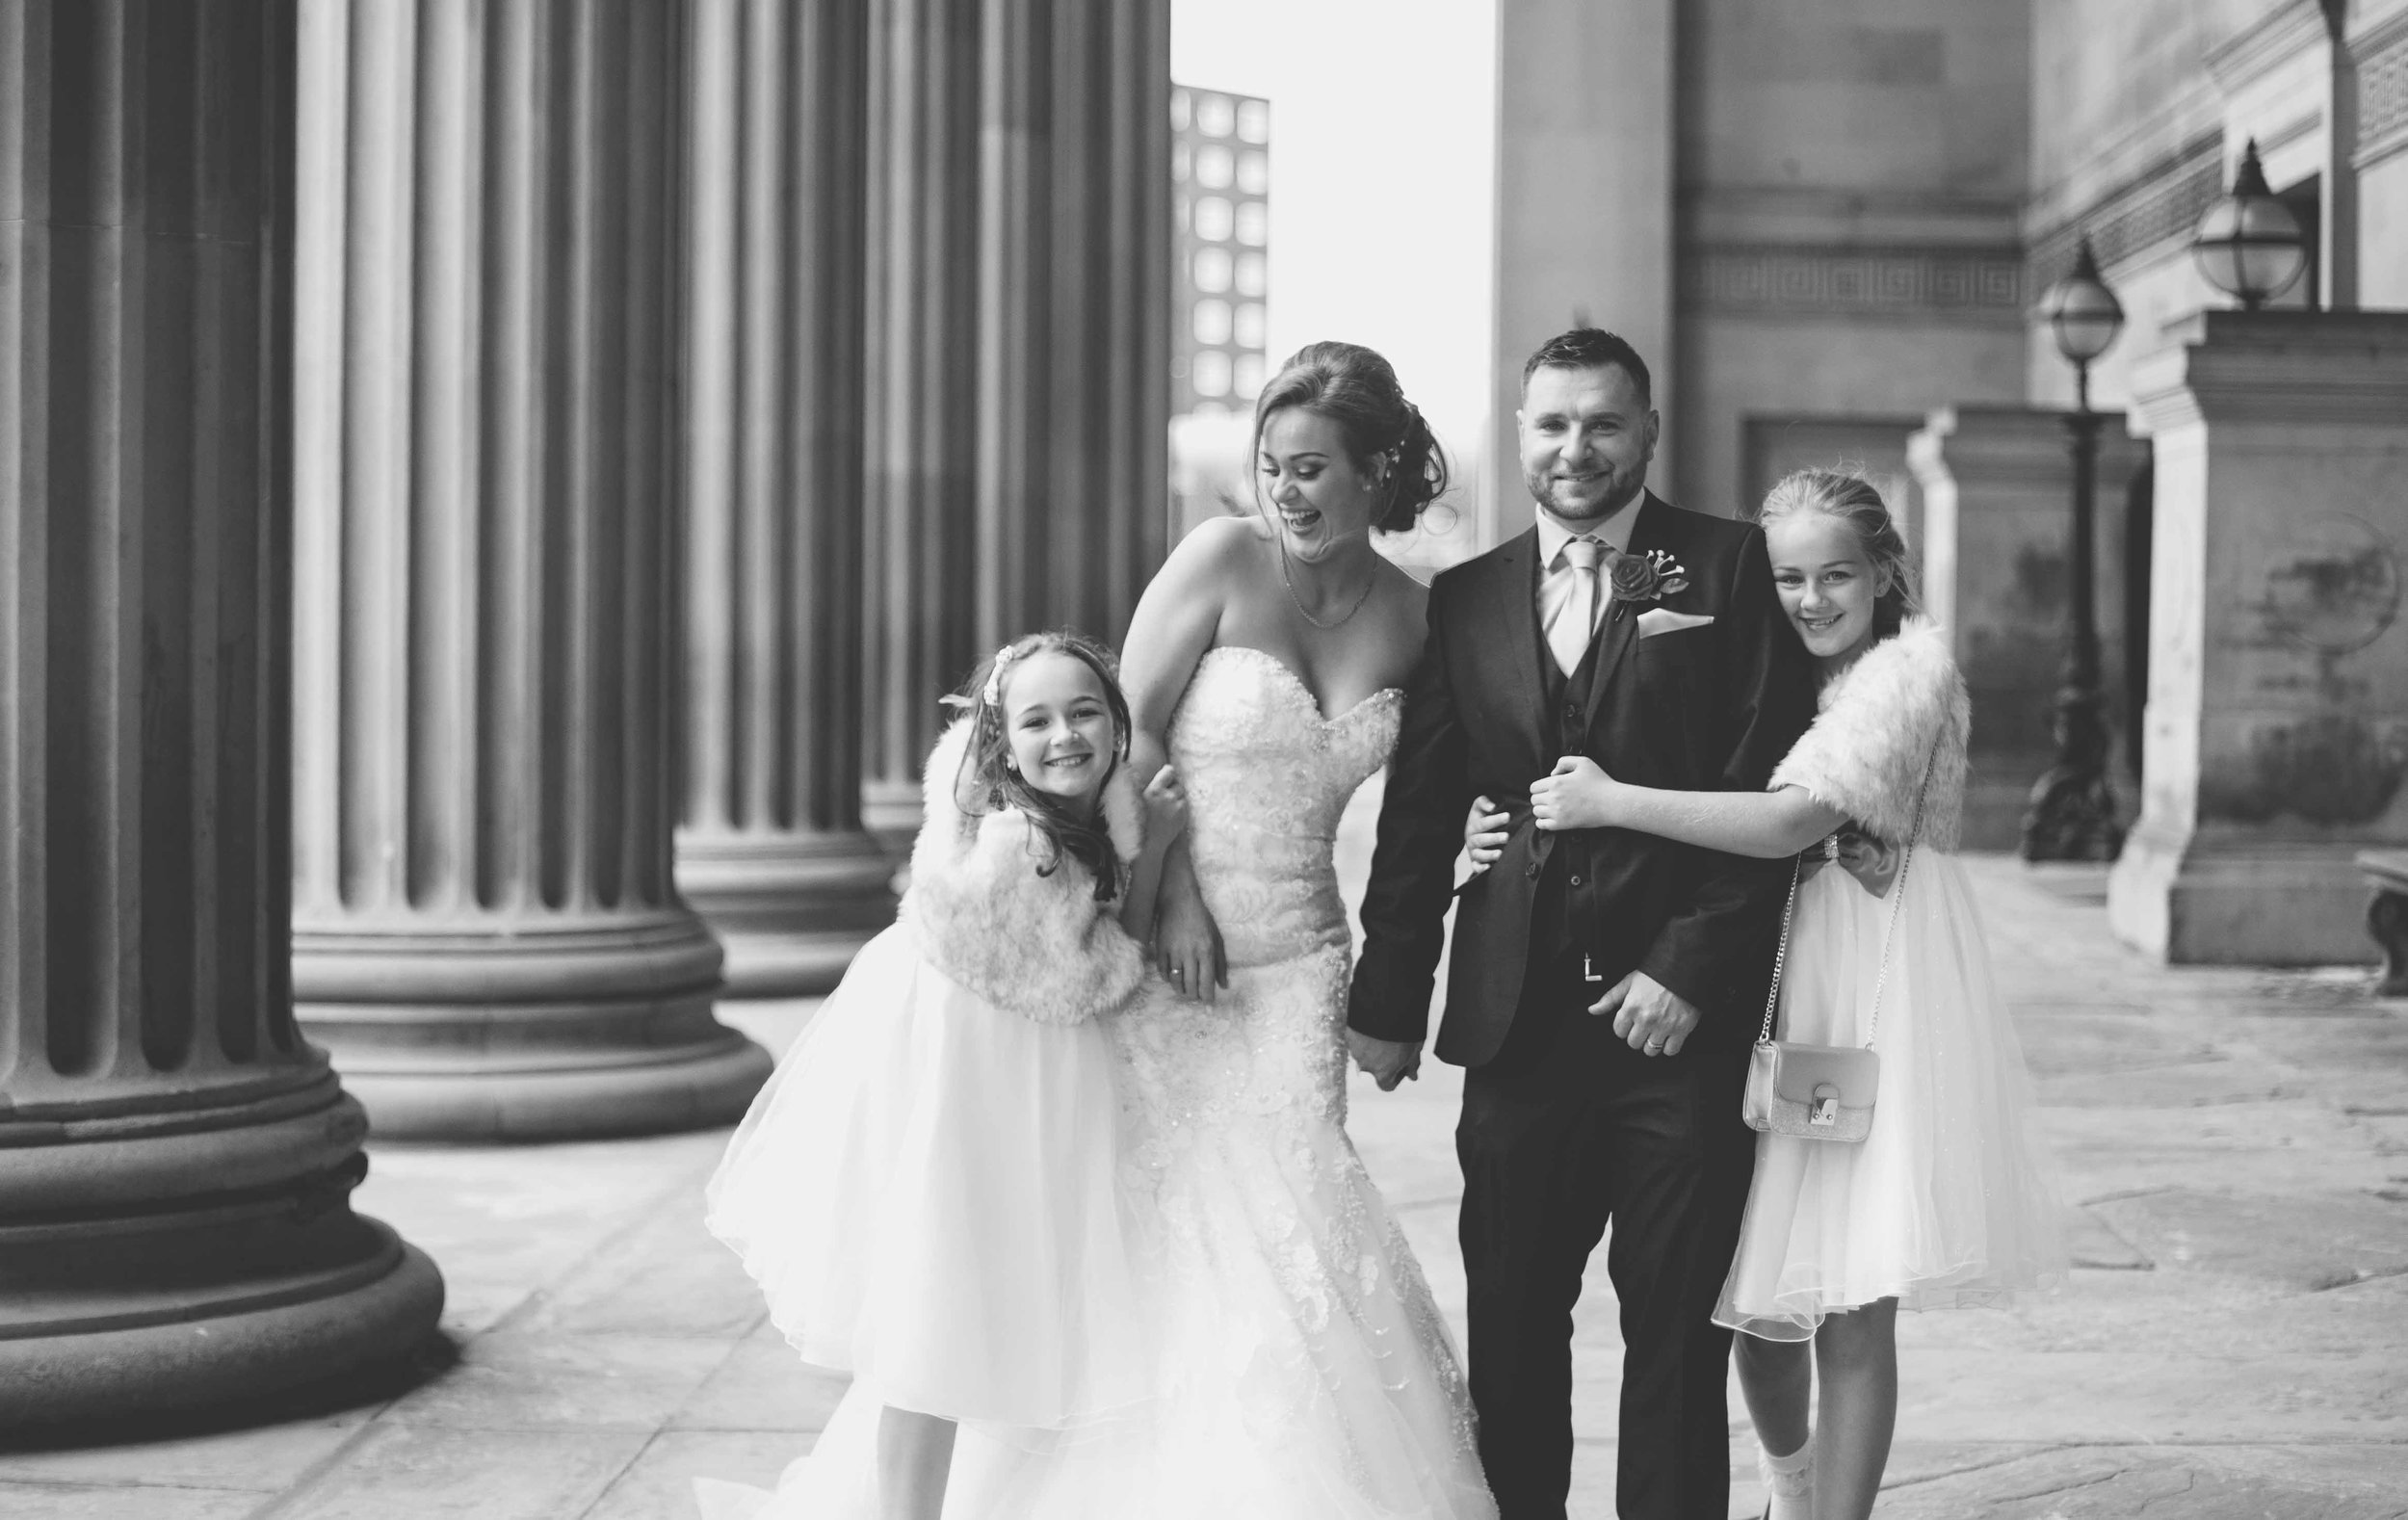 wedding-photos-at-st-georges-hall-liverpool (74 of 122).jpg